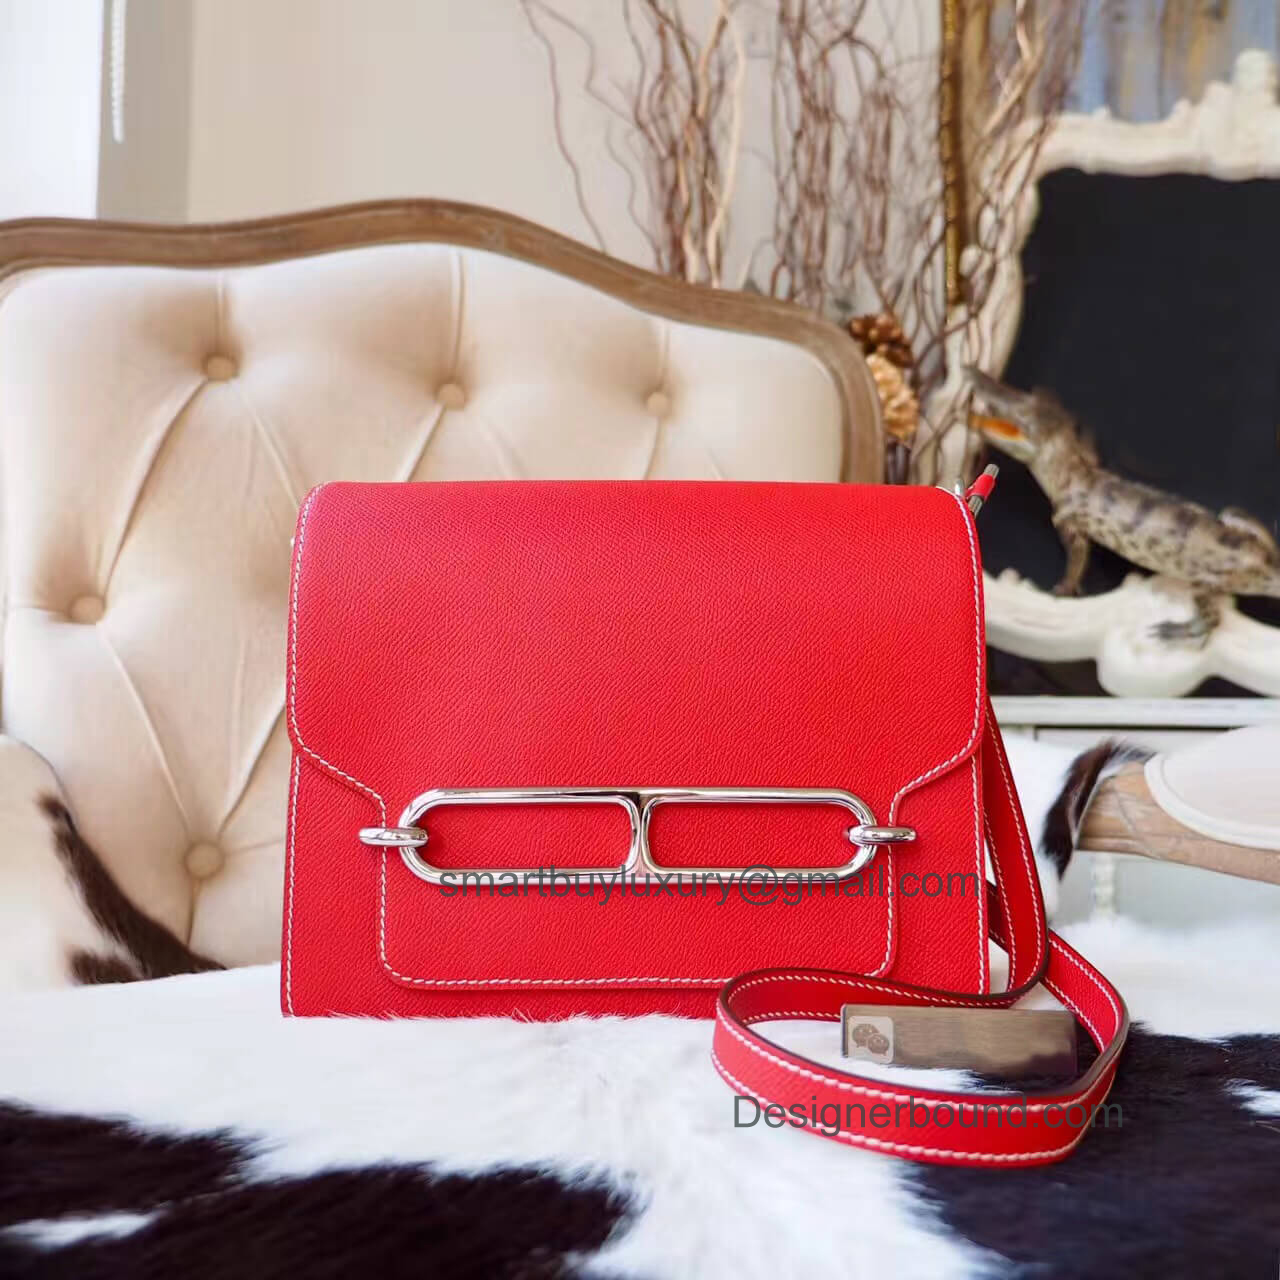 Hermes Roulis 23 Bag in q5 Rouge Casaque Epsom PHW